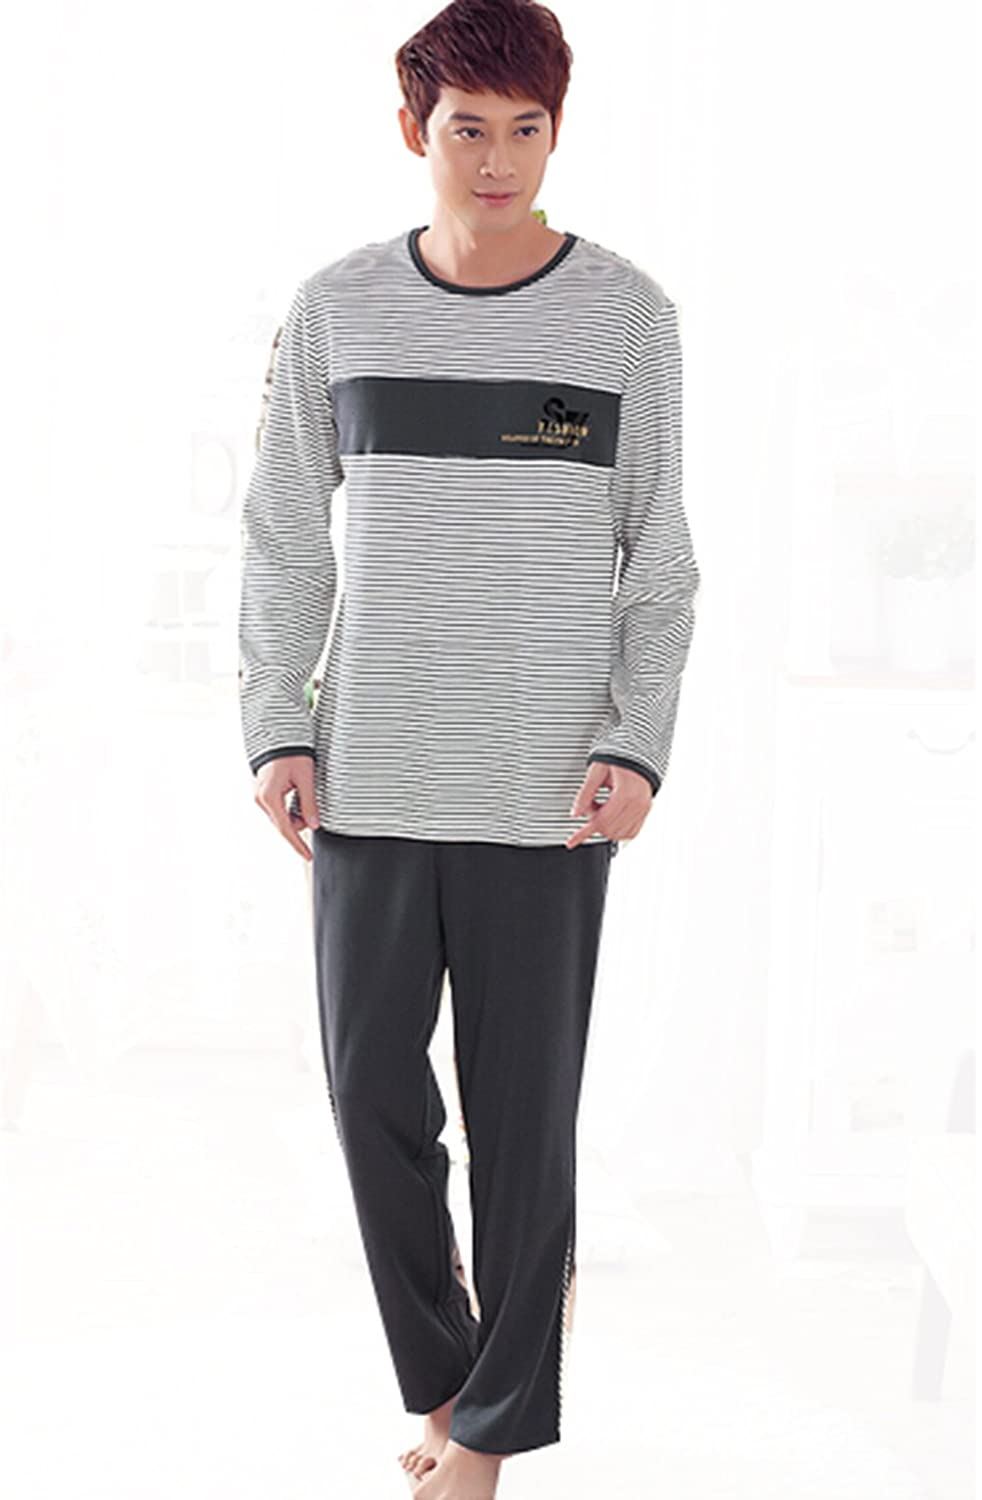 Km Mens Long Sleeve Cotton Homewear Pullover Pajamas Set#85062